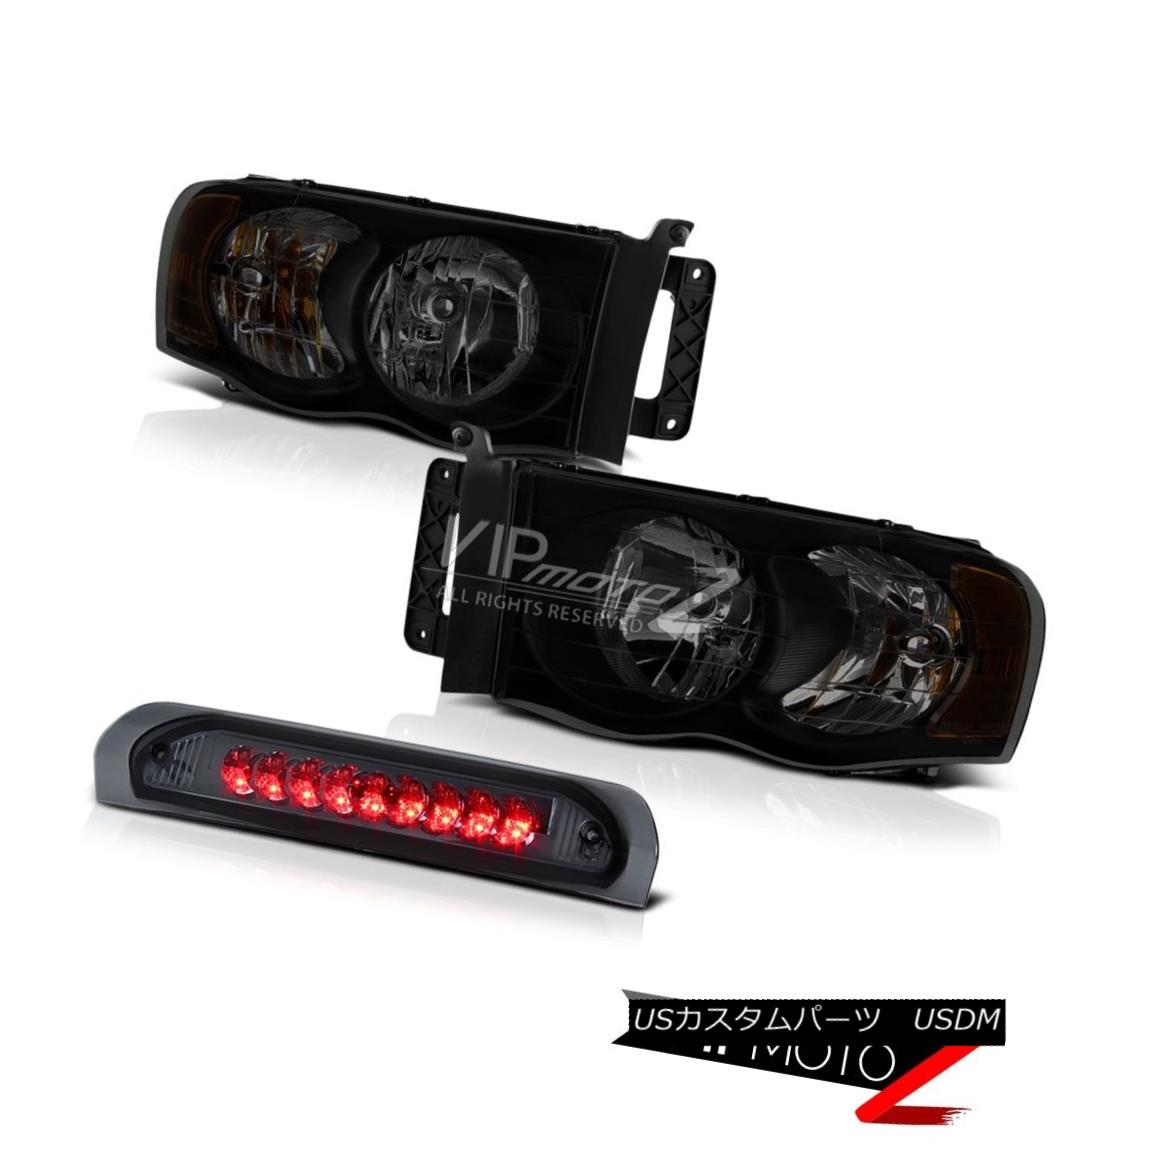 ヘッドライト 02-06 Dodge Ram 2500 3500 5.9L Sinister Black Headlamps High Stop Lamp Assembly 02-06 Dodge Ram 2500 3500 5.9L Sinister Blackヘッドランプハイストップランプアセンブリ